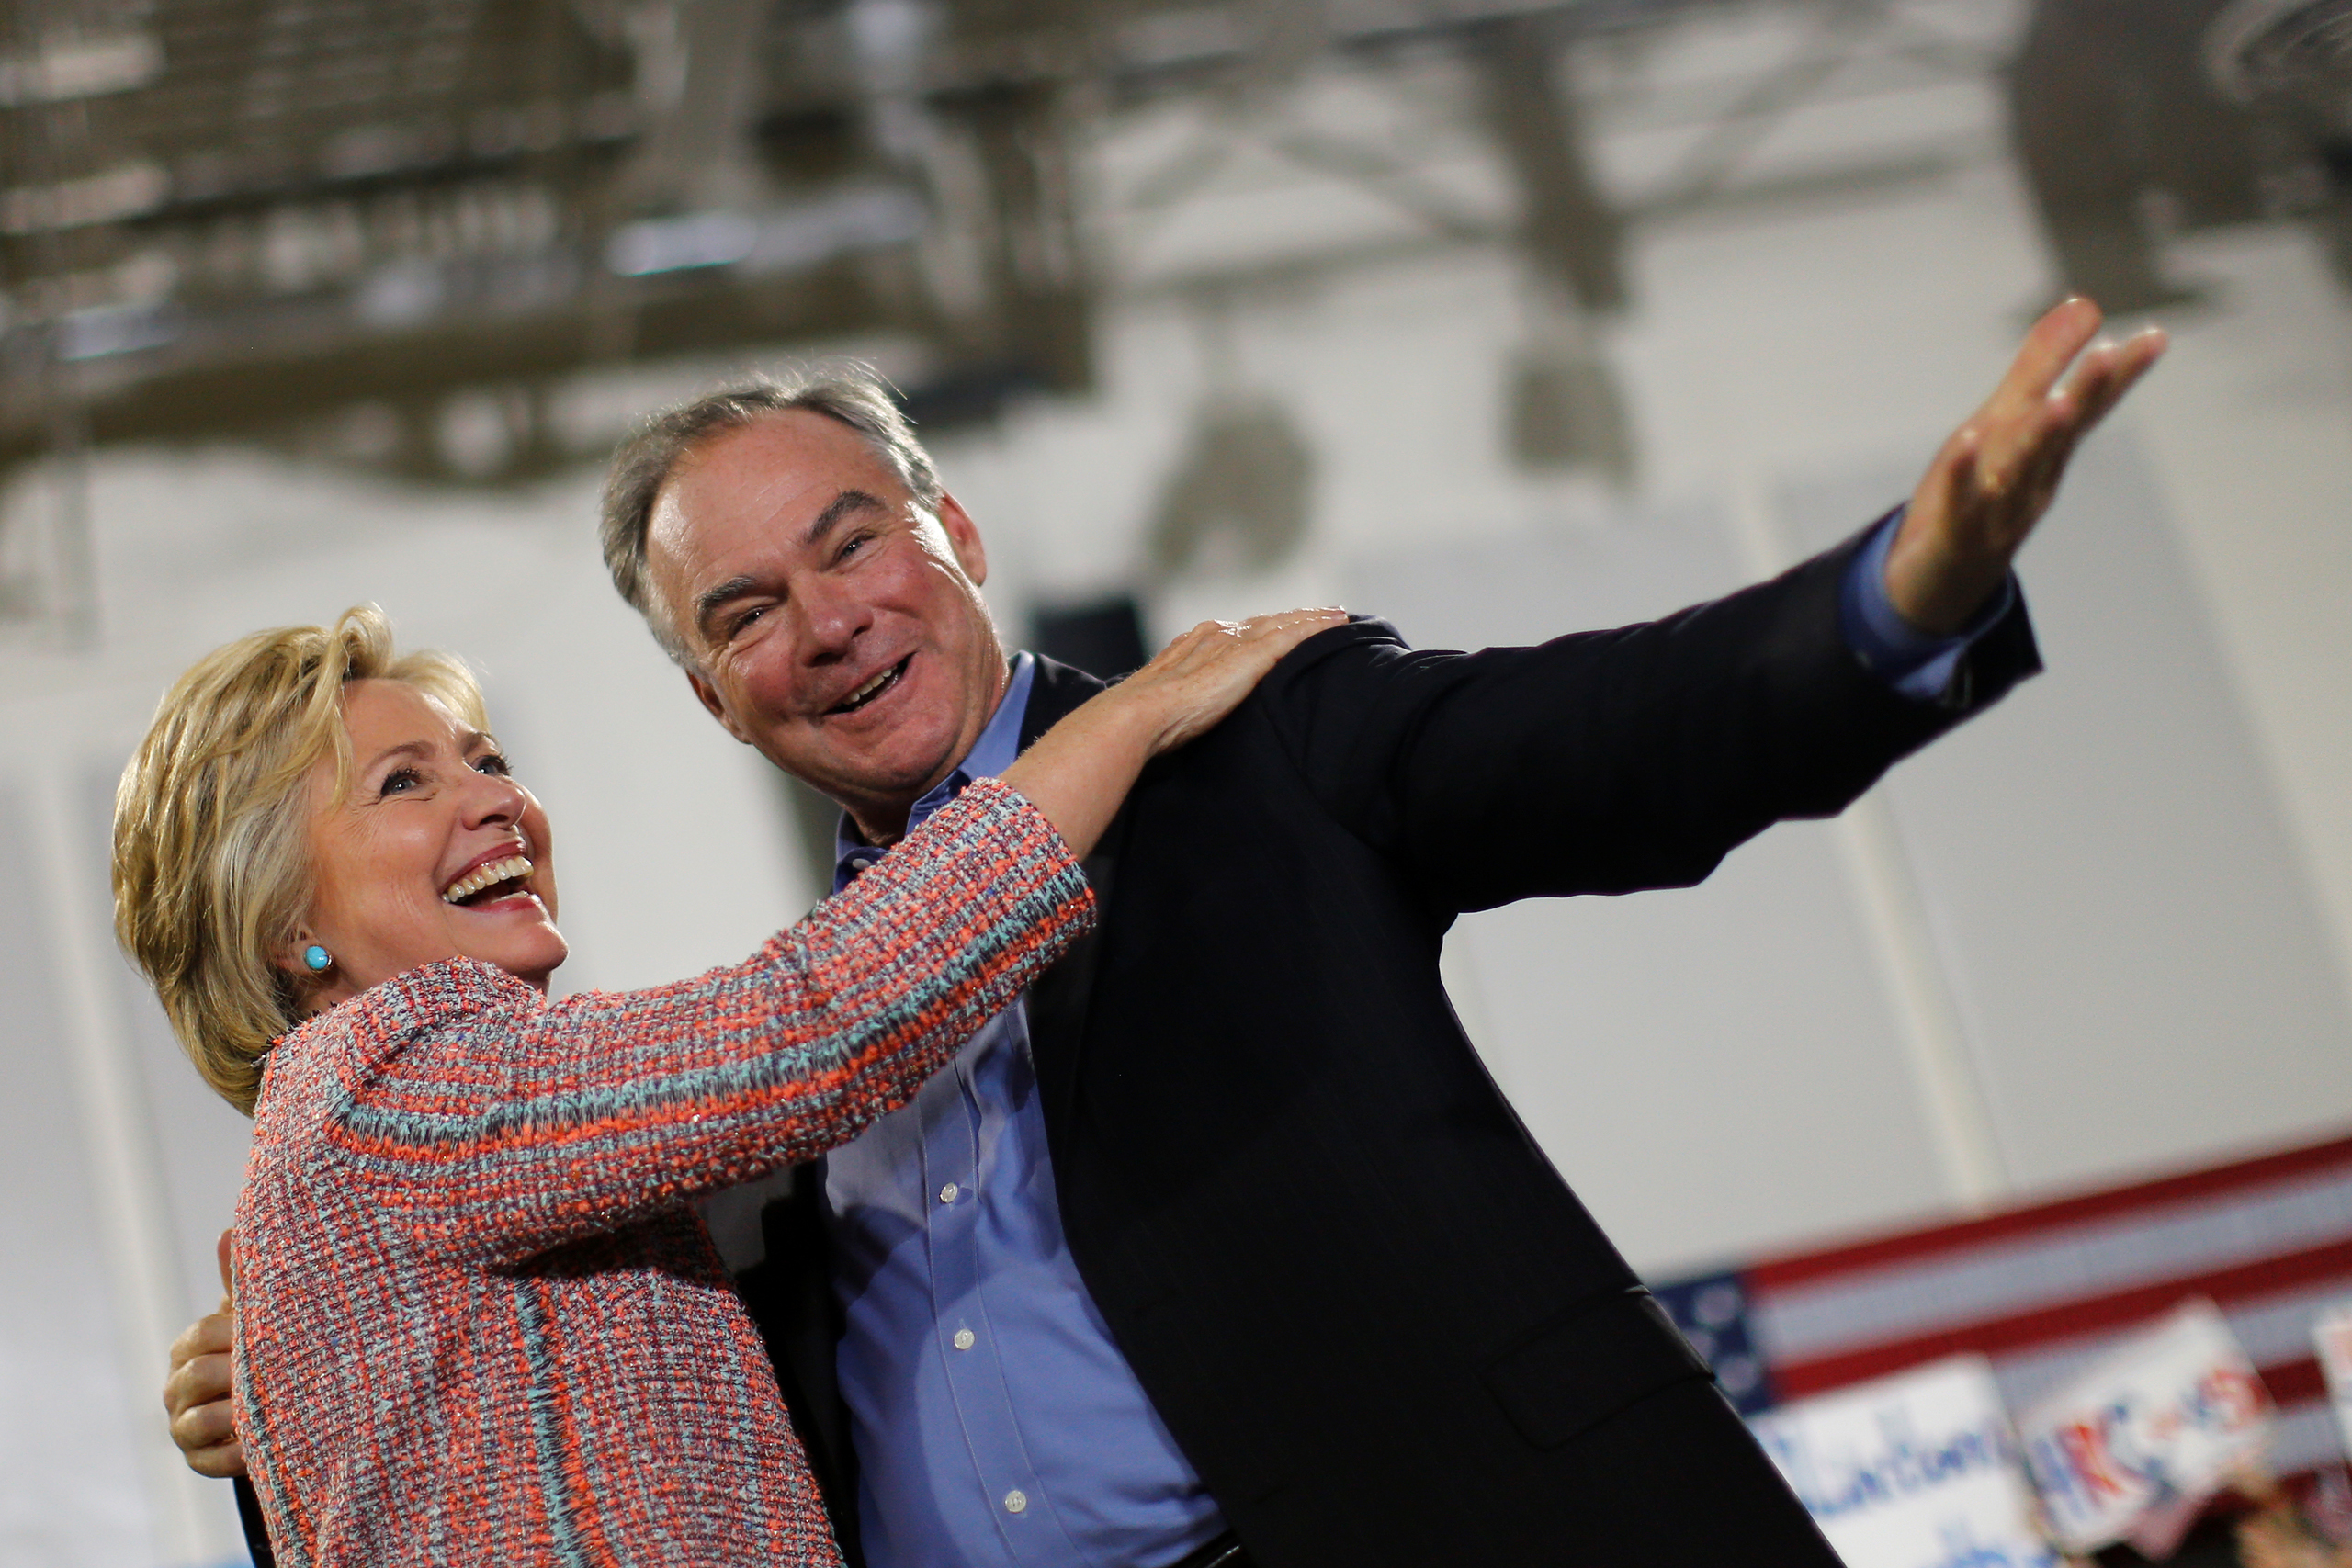 Democratic U.S. presidential candidate Hillary Clinton and U.S. Senator Tim Kaine react during a campaign rally at Ernst Community Cultural Center in Annandale, Virginia on July 14, 2016.